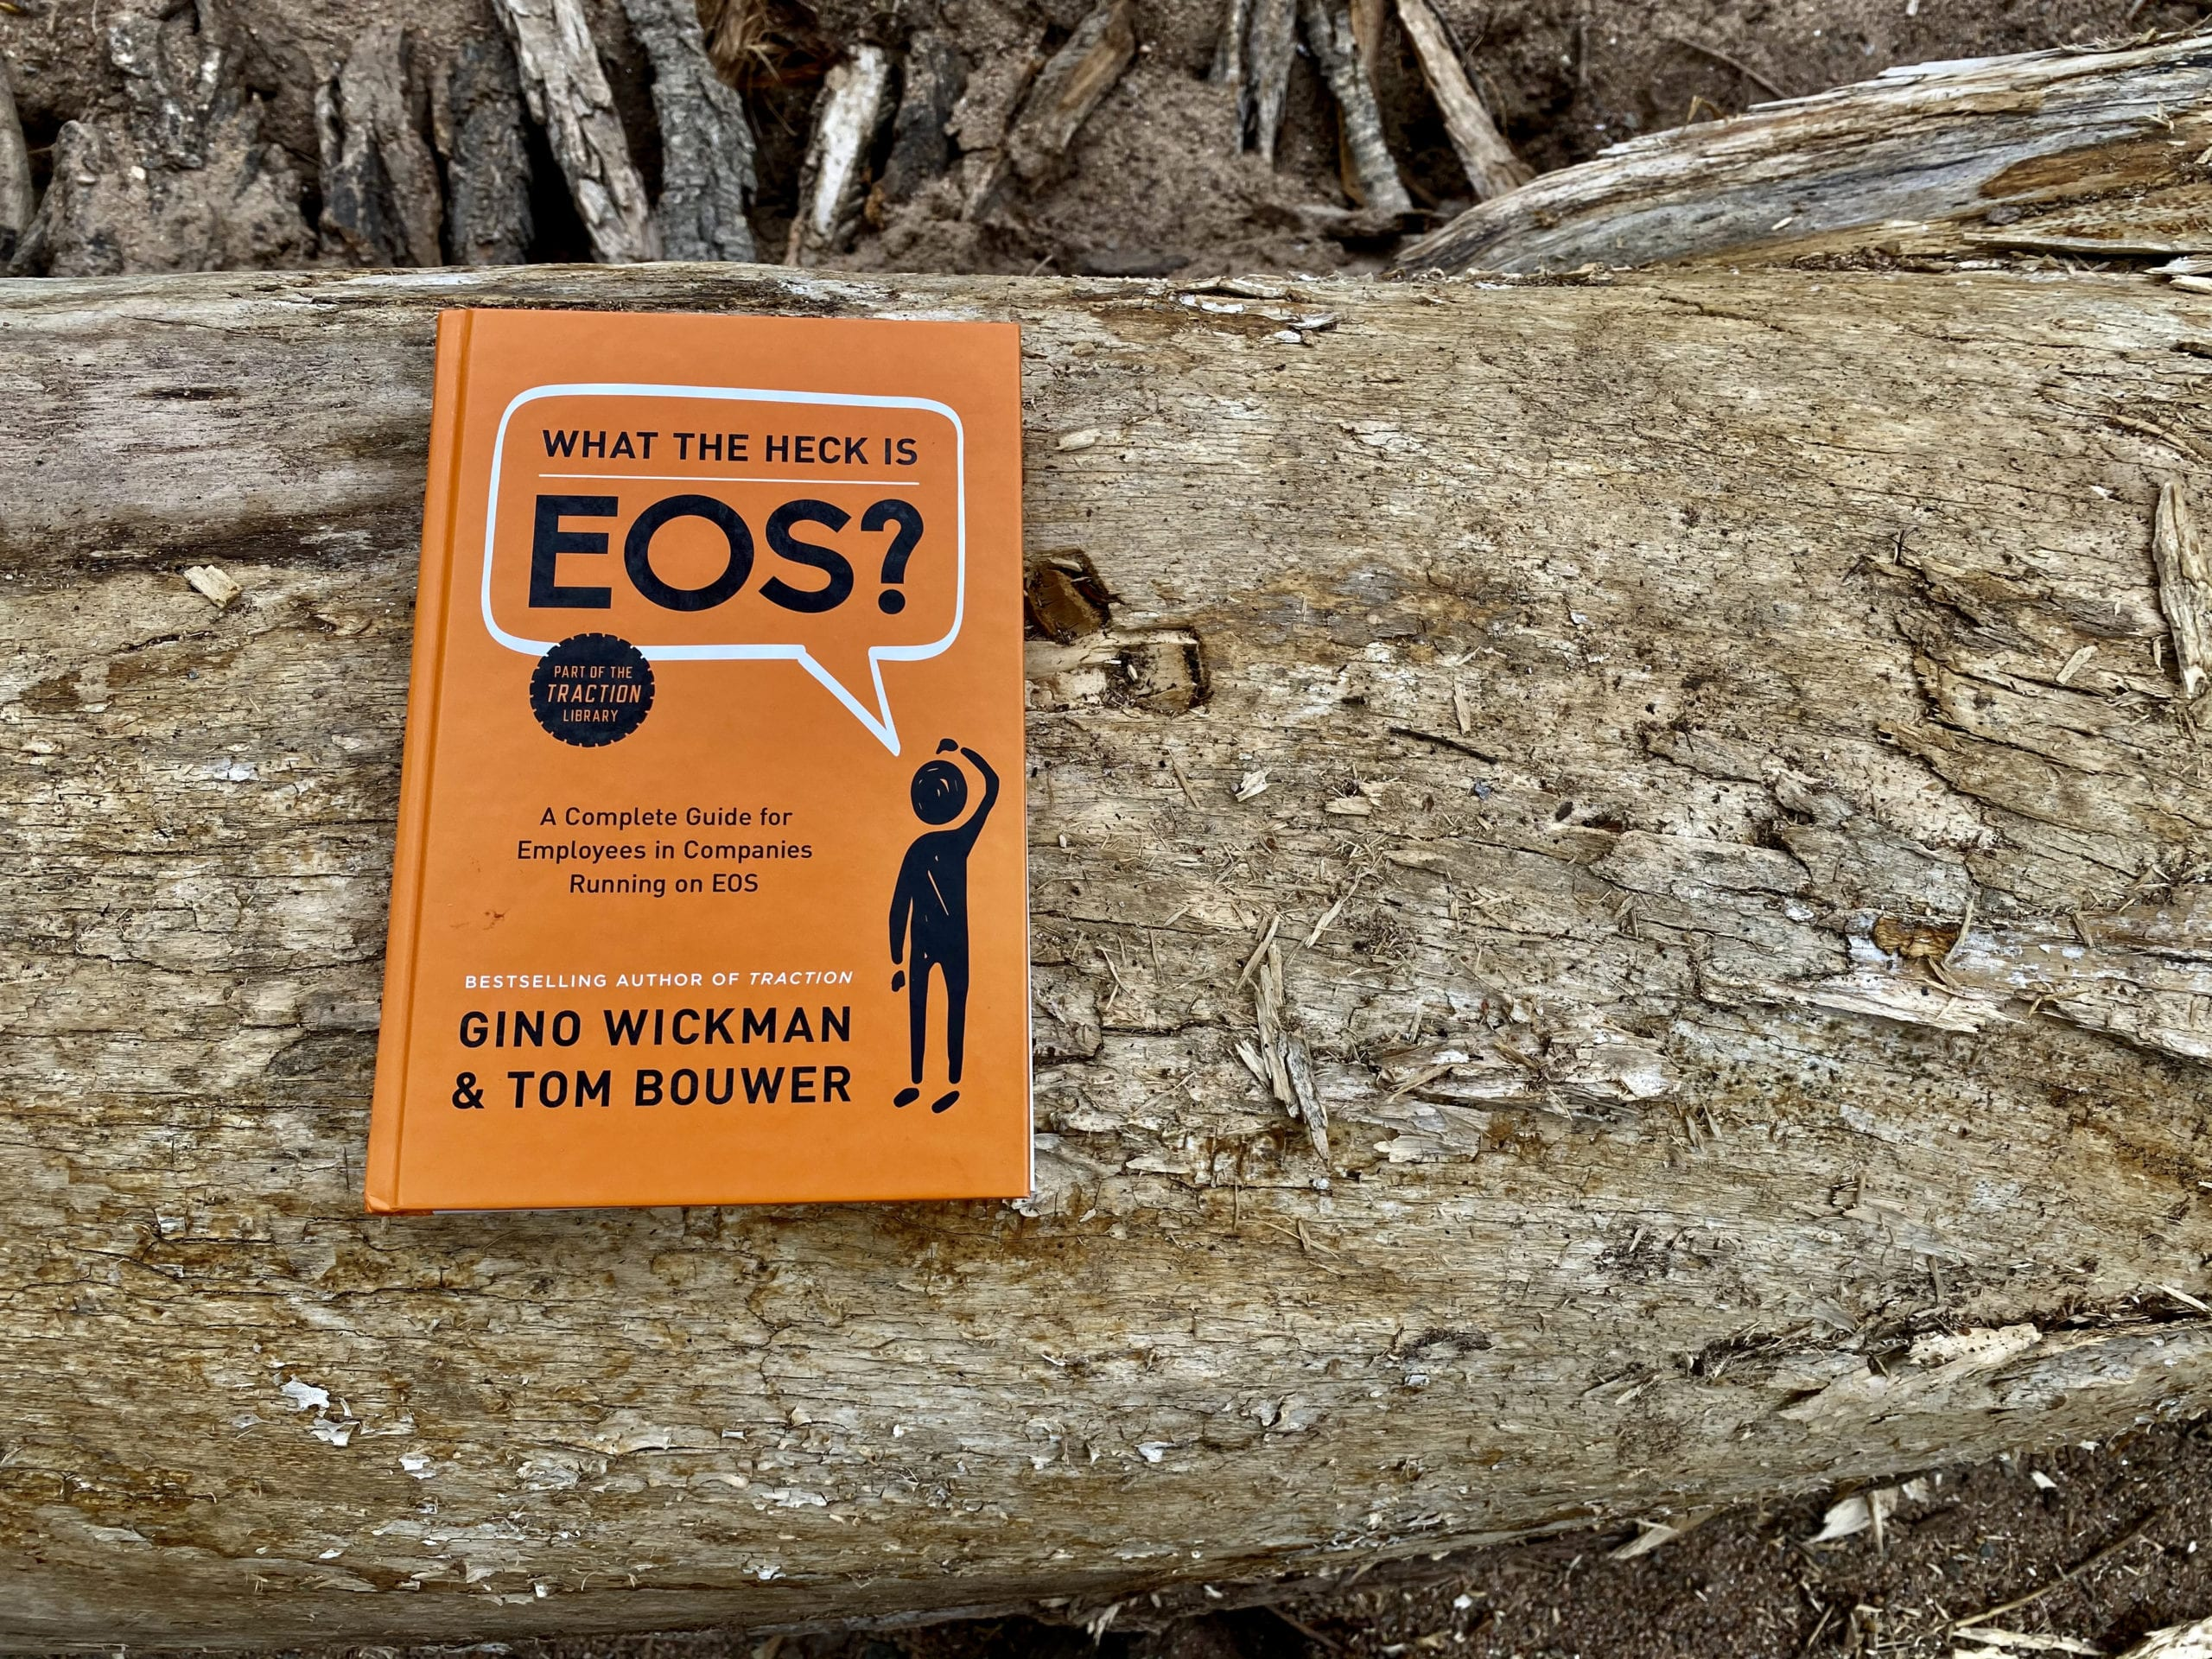 What The Heck Is EOS - Book Photo on Log